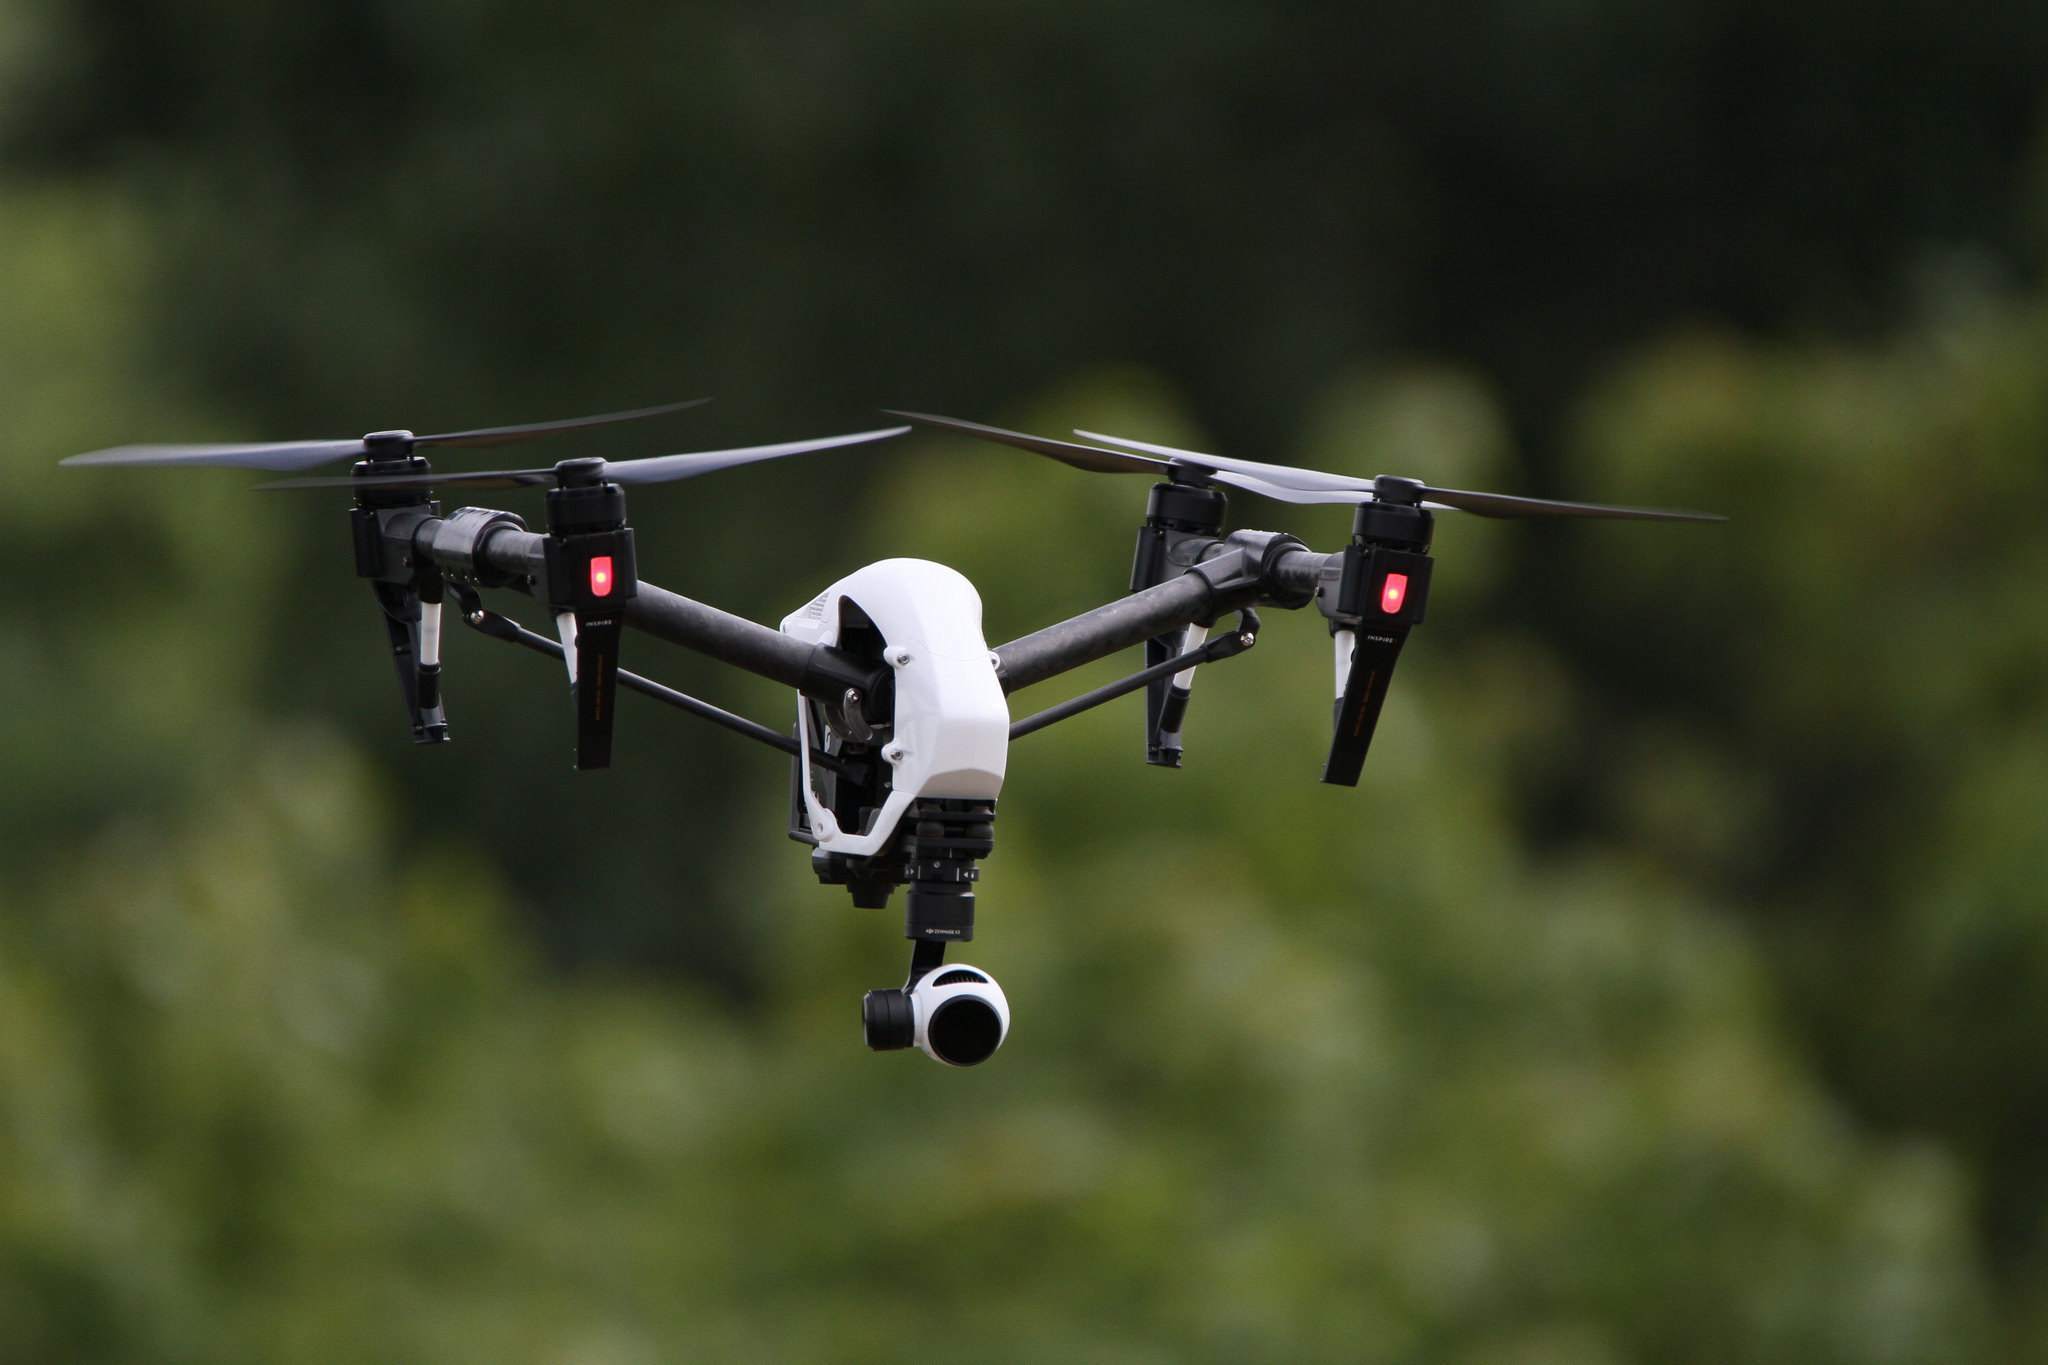 DJI Inspire 1 – The Latest in Aerial Drone Technology